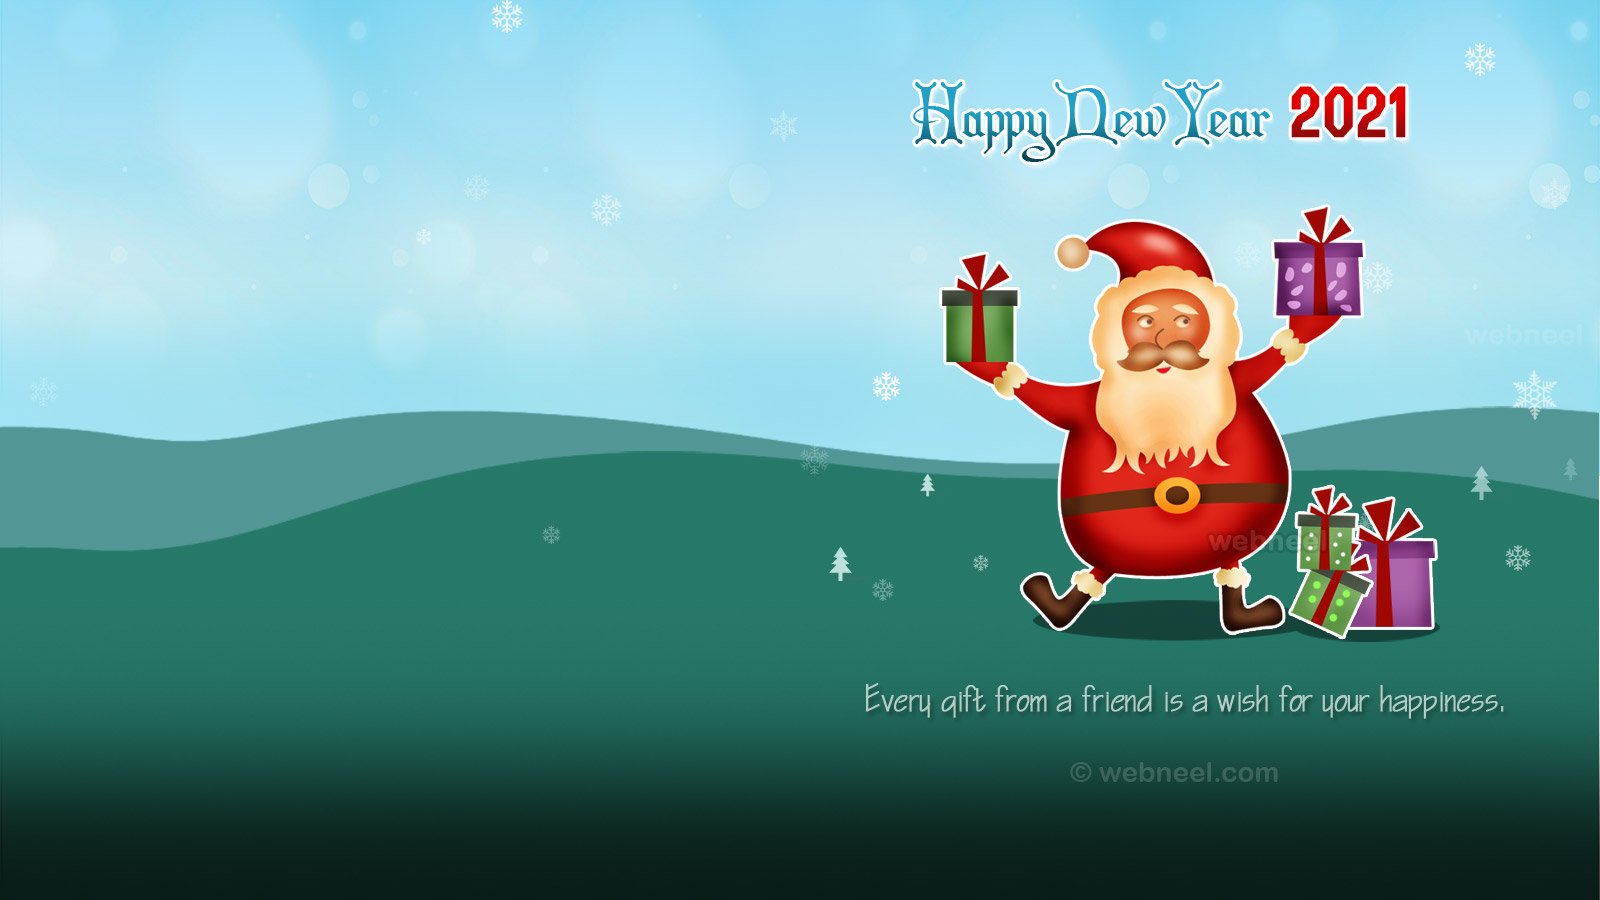 newyear wallpaper santa